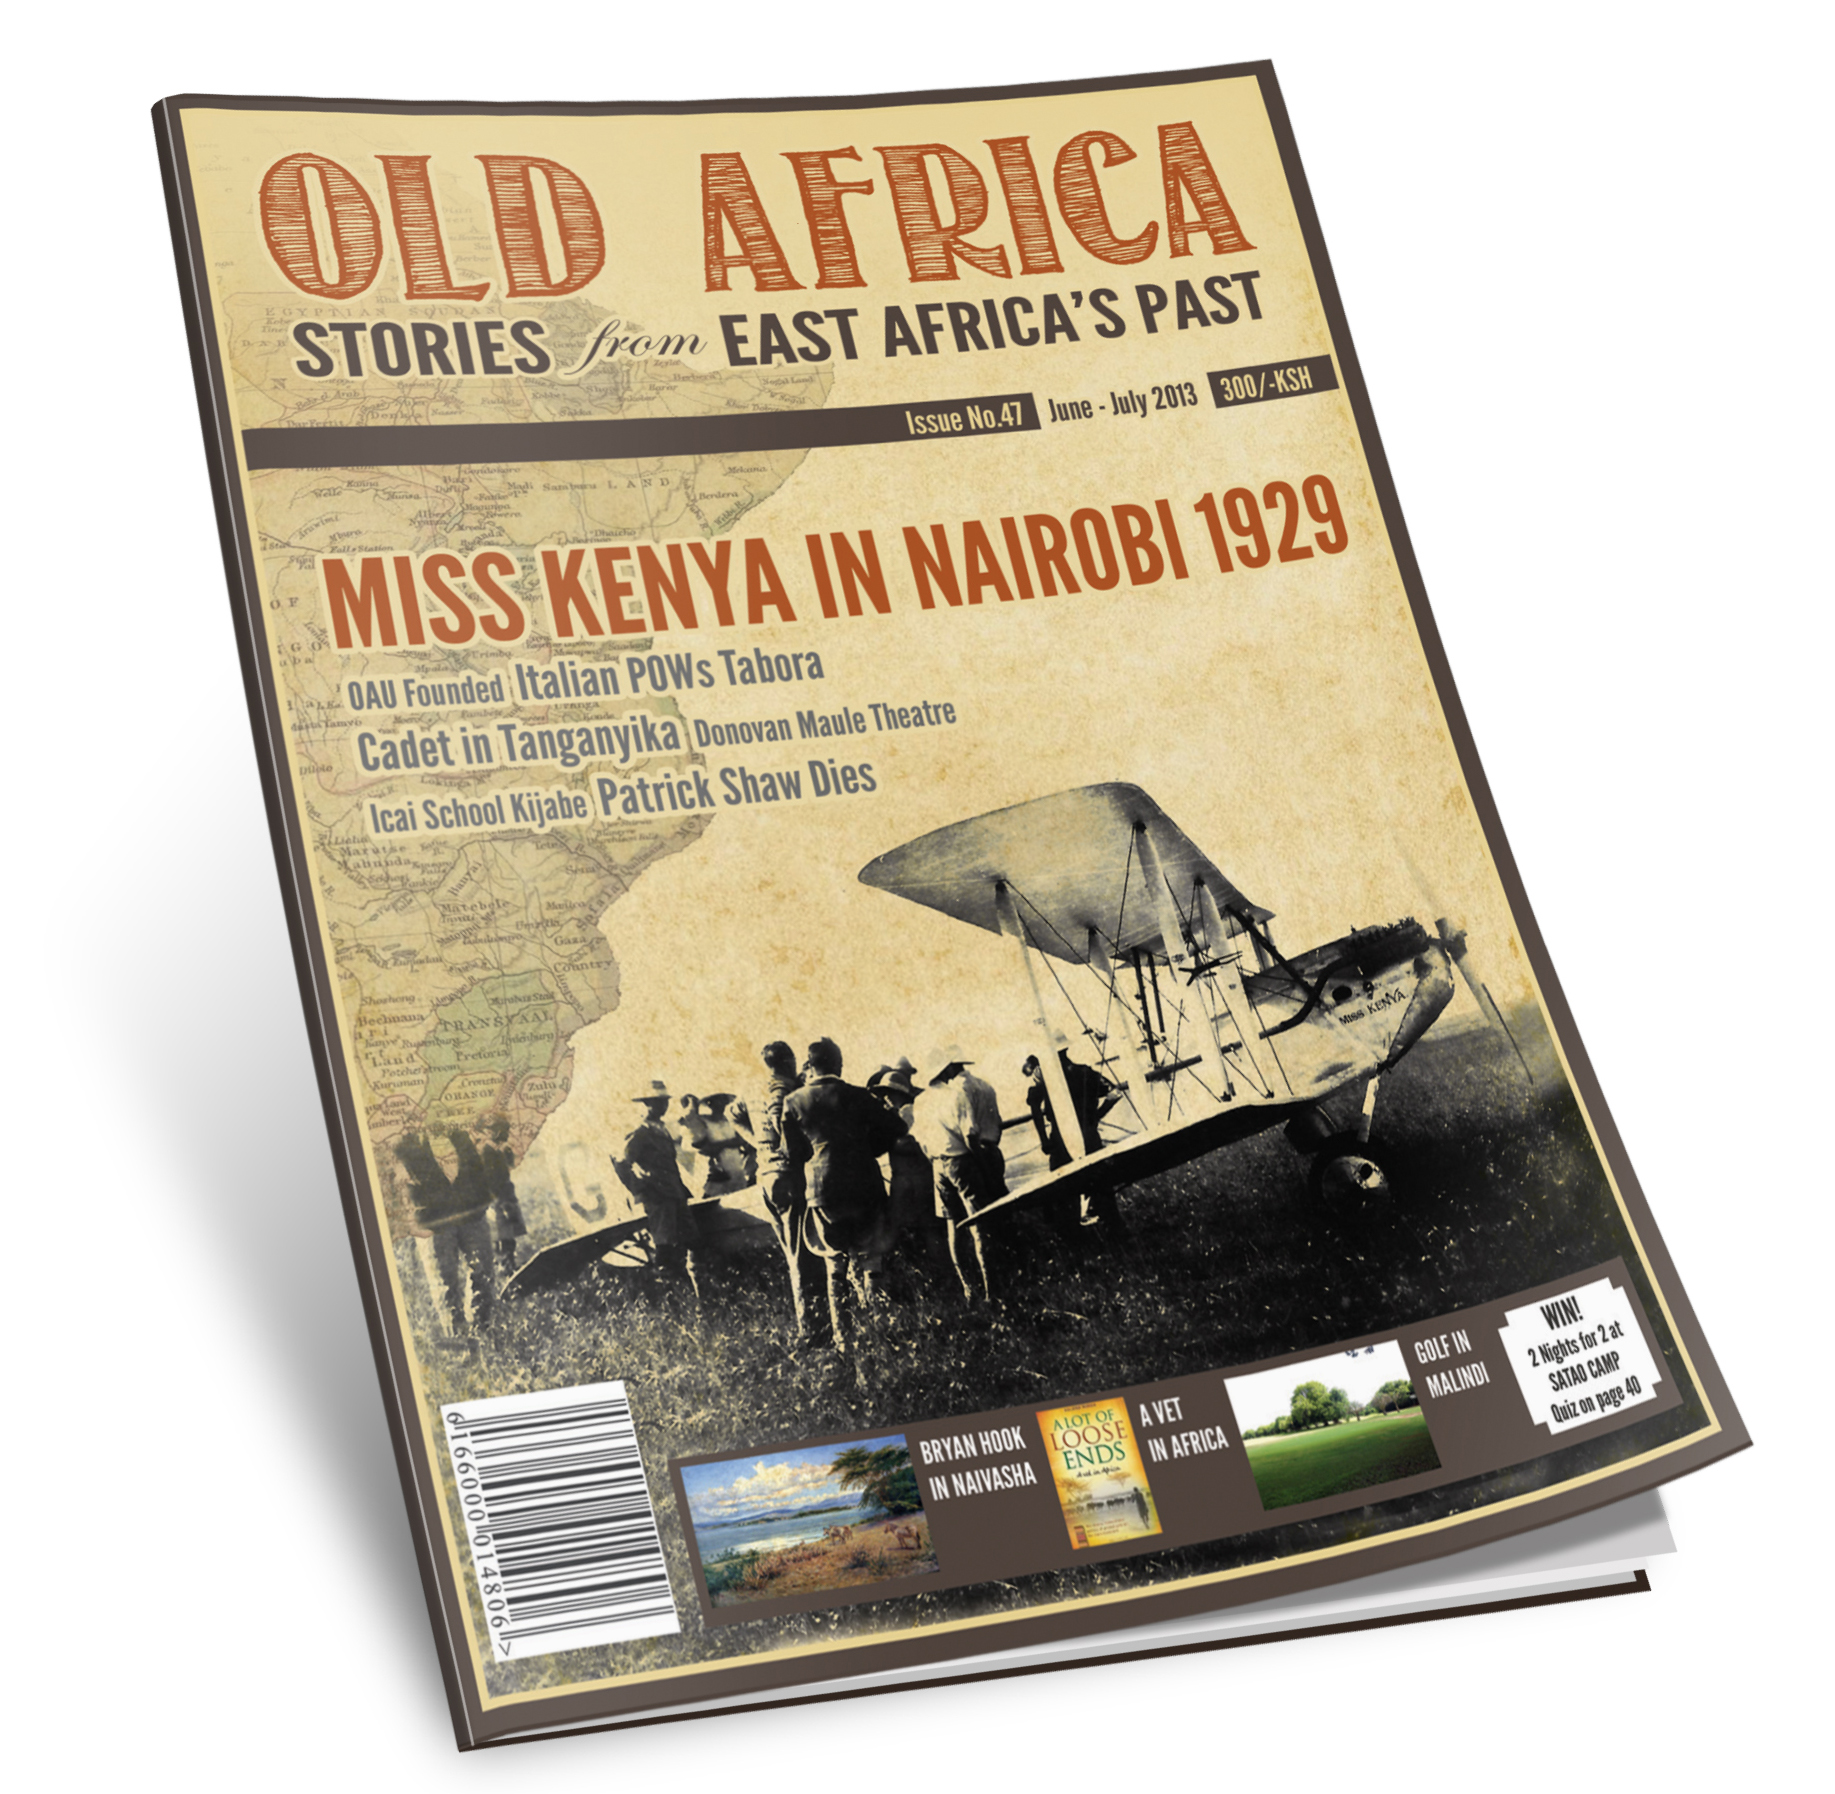 Old africa magazine stories from east africa 39 s past for Old magazines